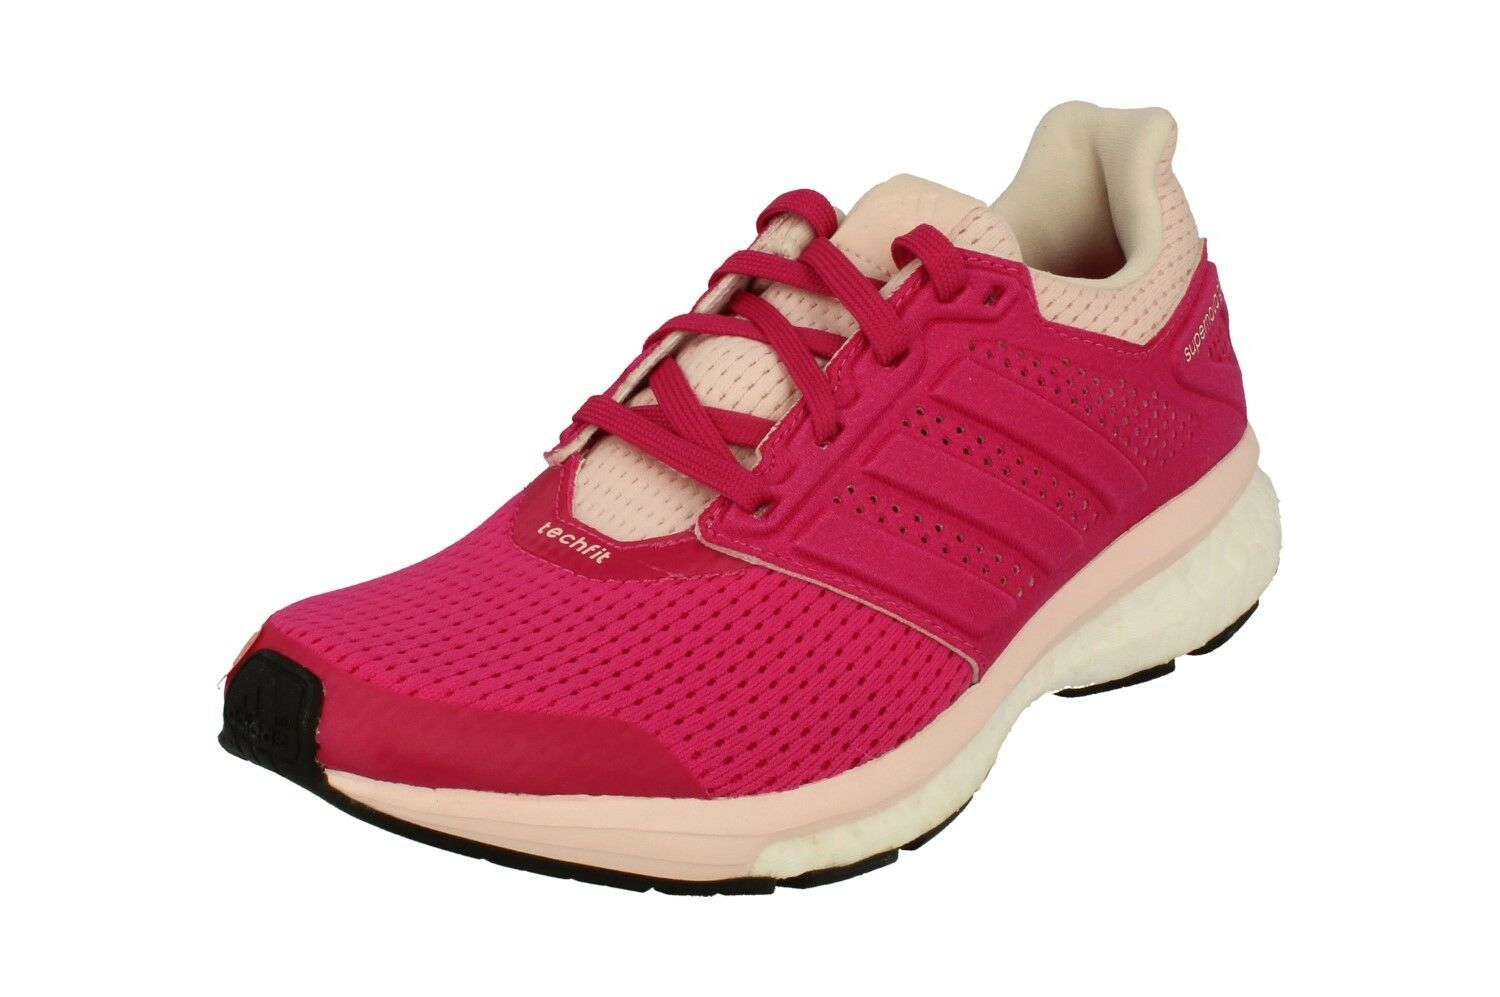 Adidas Supernova Glide 8 Boost Womens Running Trainers Sneakers AF6562